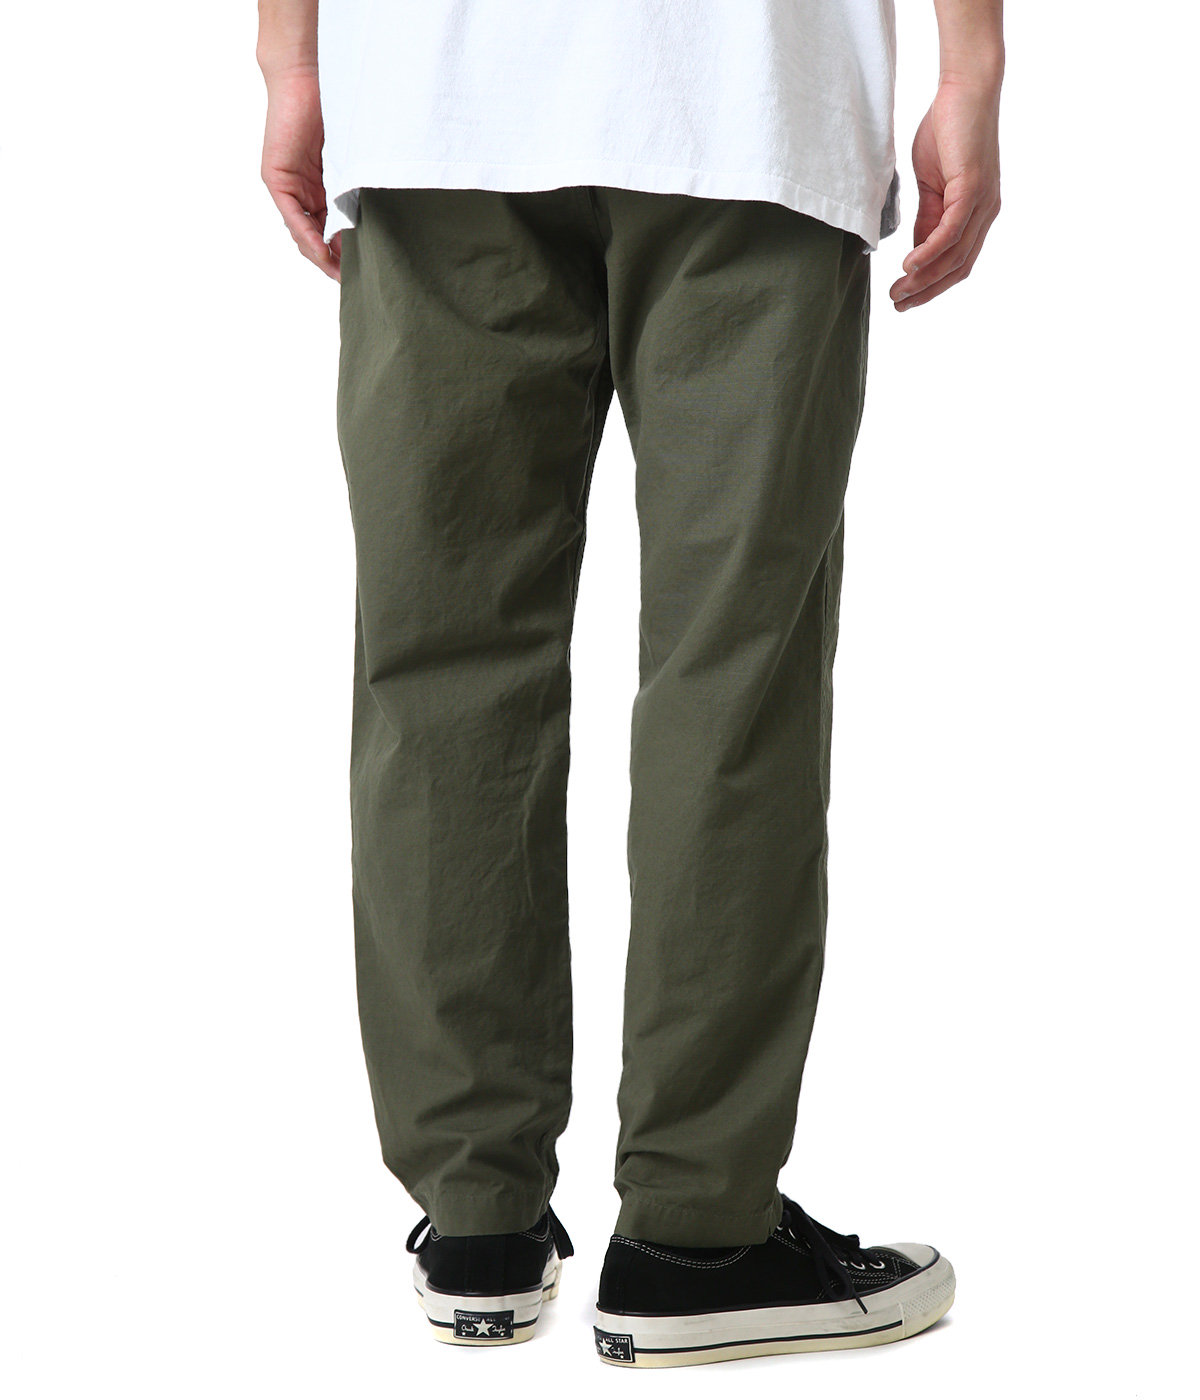 UNISEX NEW YORKER ARMY